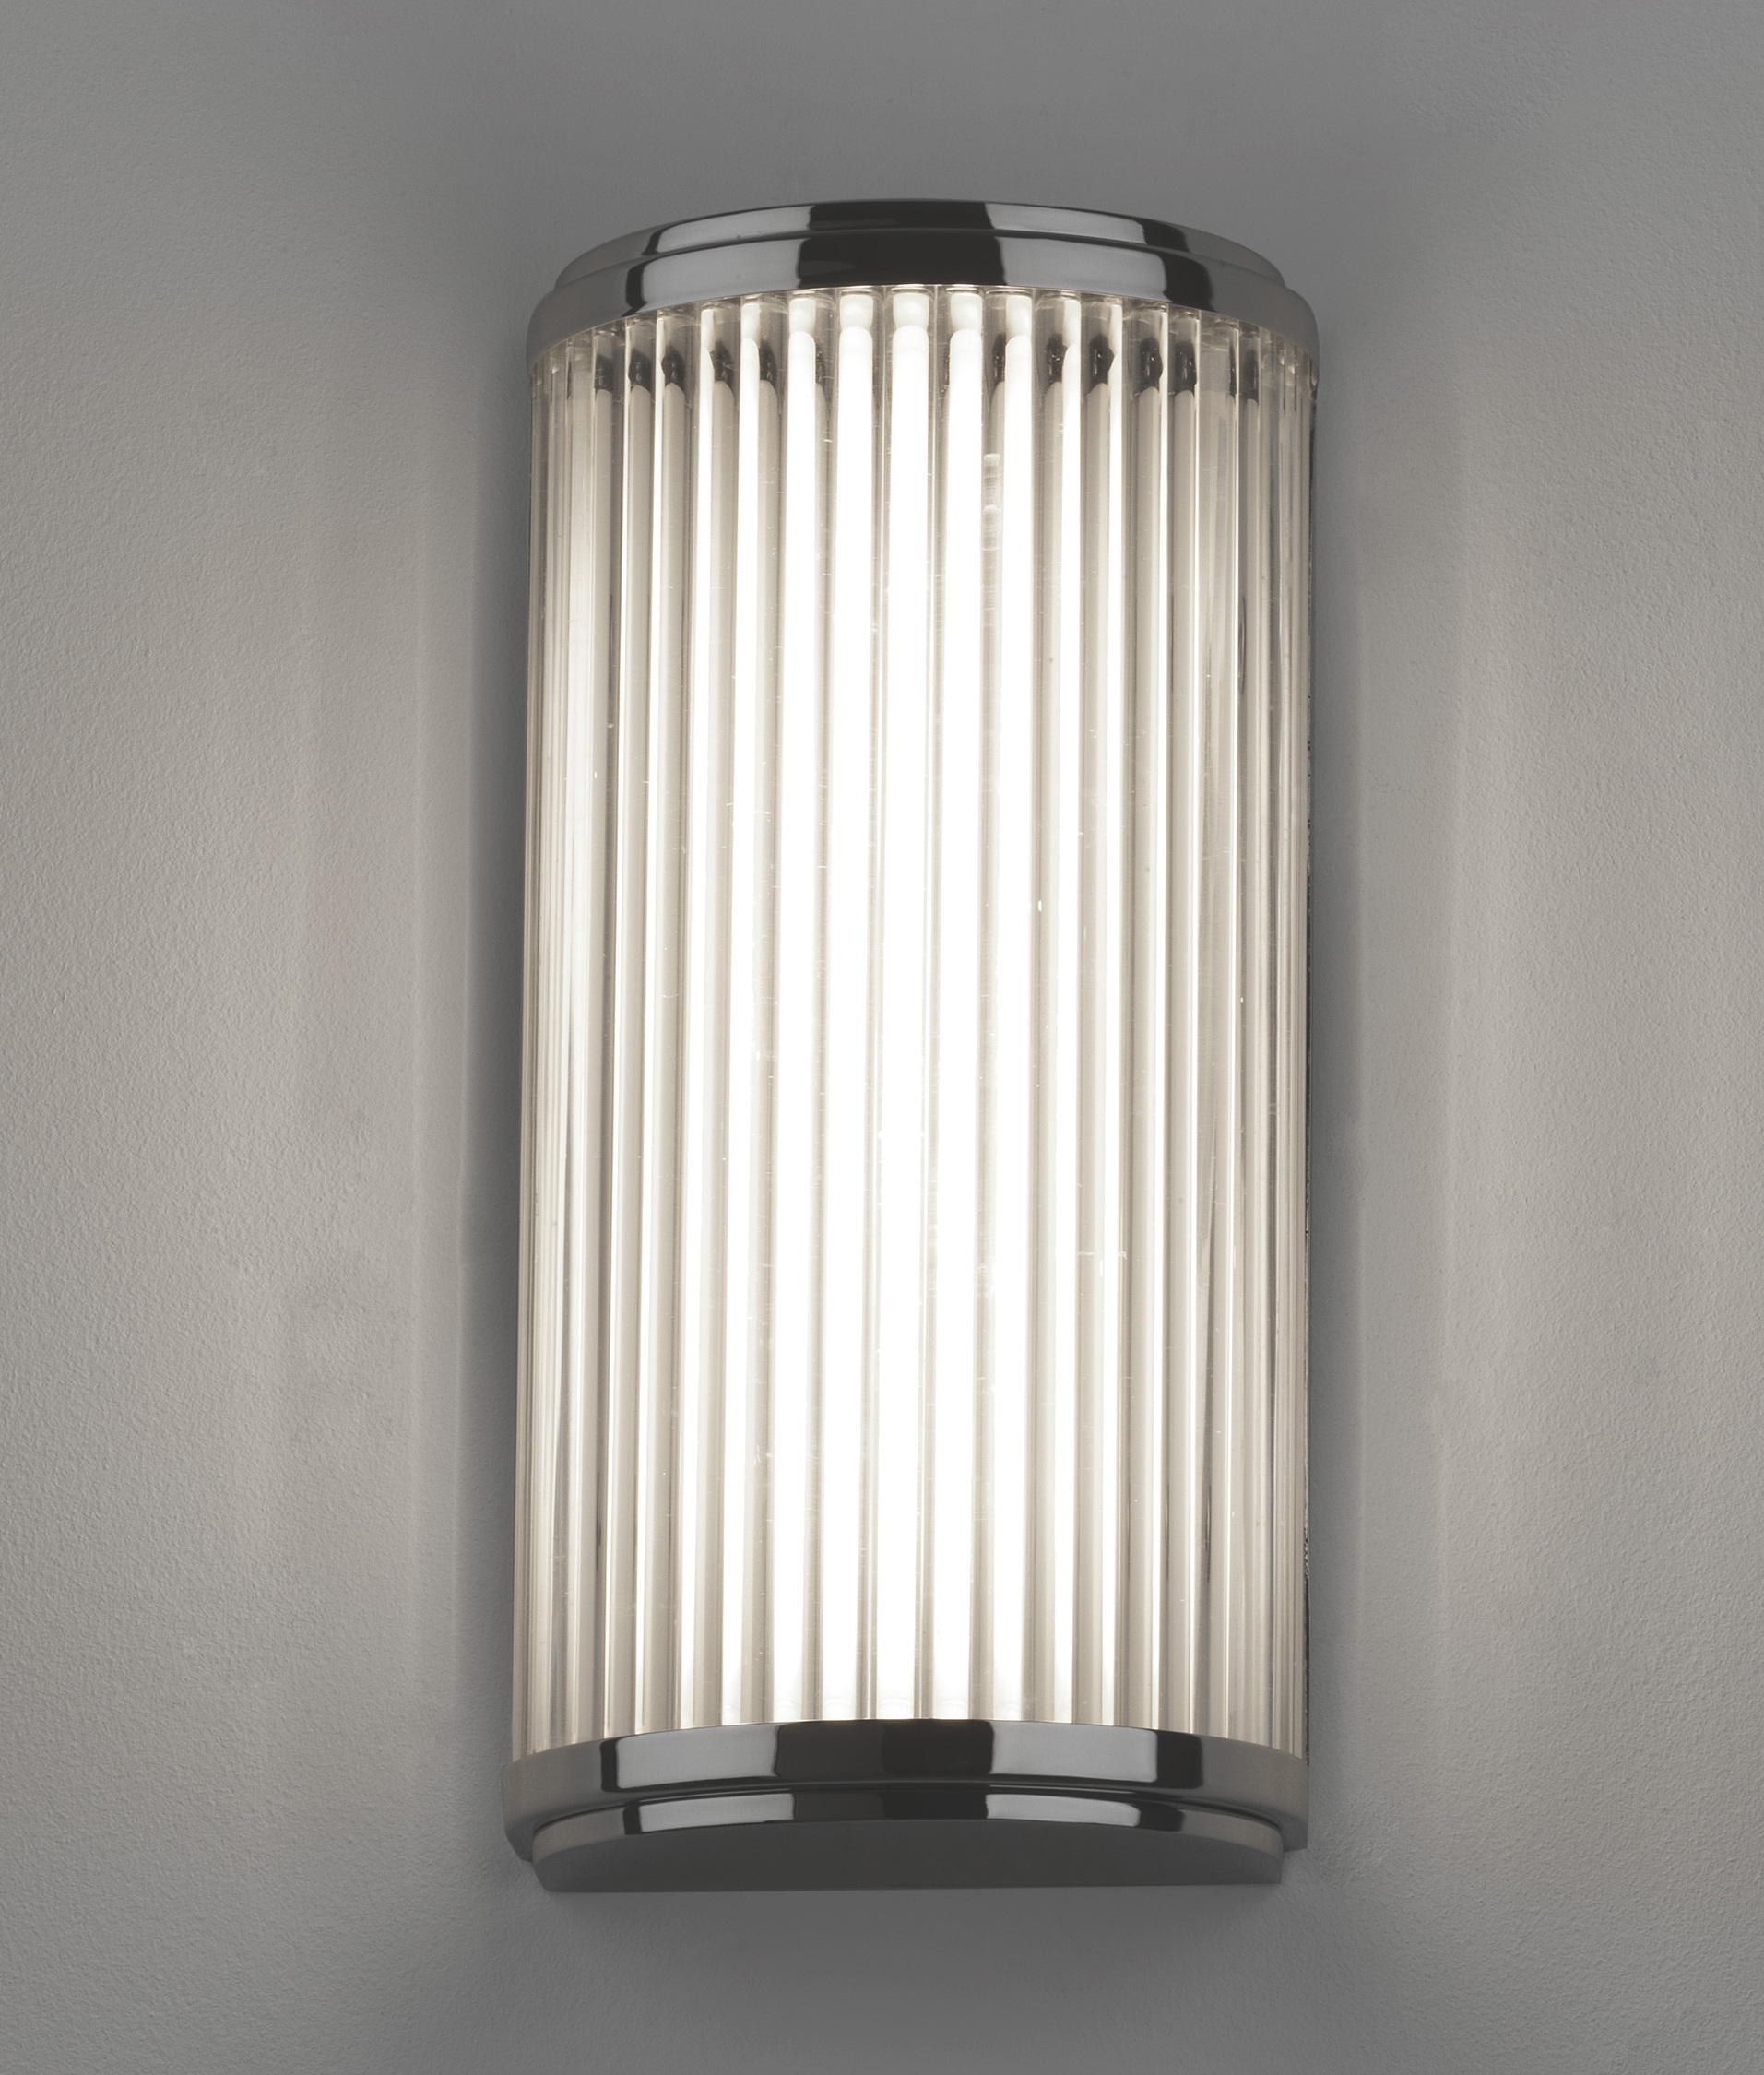 LED IP44 Wall Light - Glass Rods H:250mm